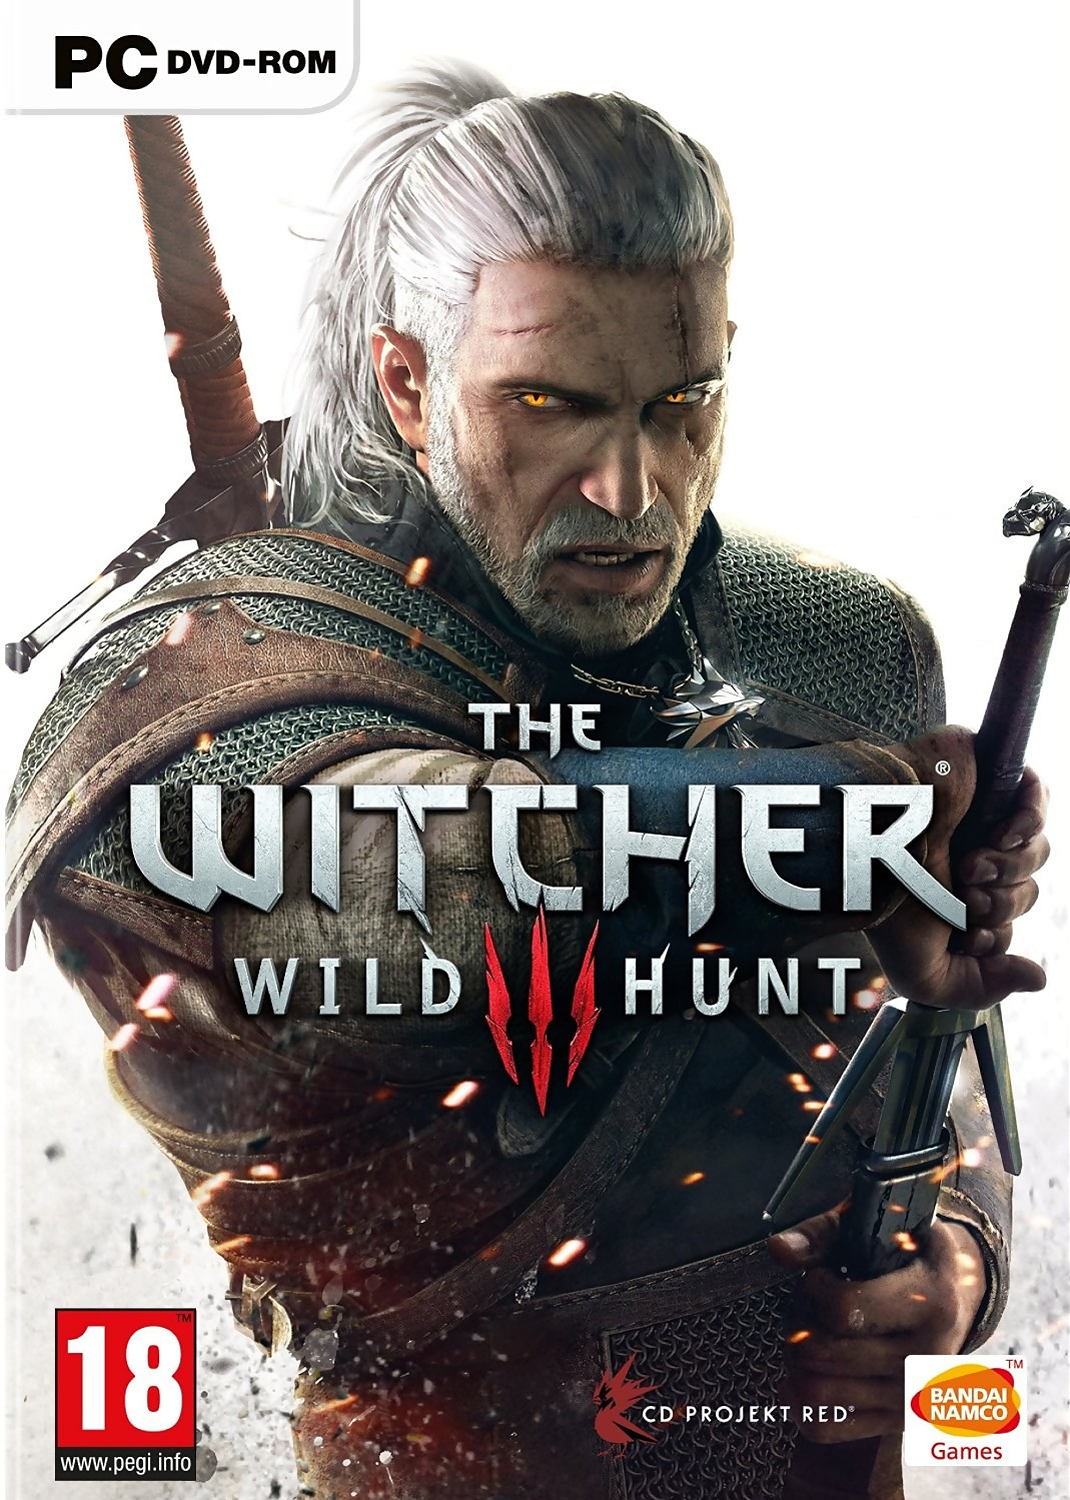 Fájl:TheWitcher3BoxArt.png